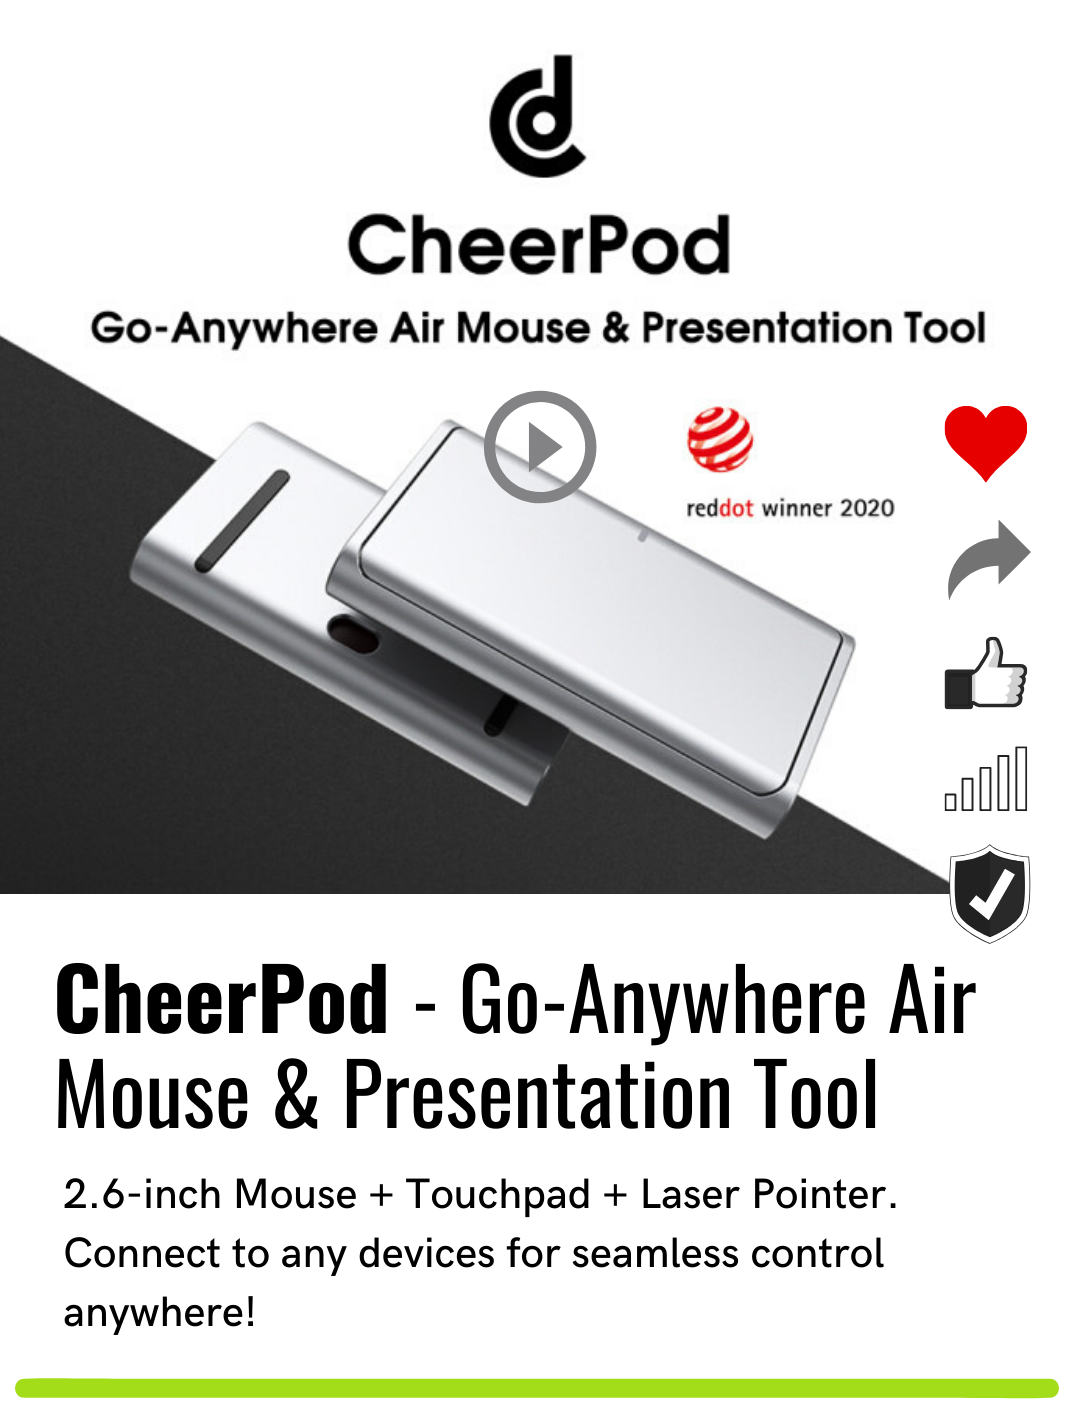 CheerPod - Go-Anywhere Air Mouse & Presentation Tool